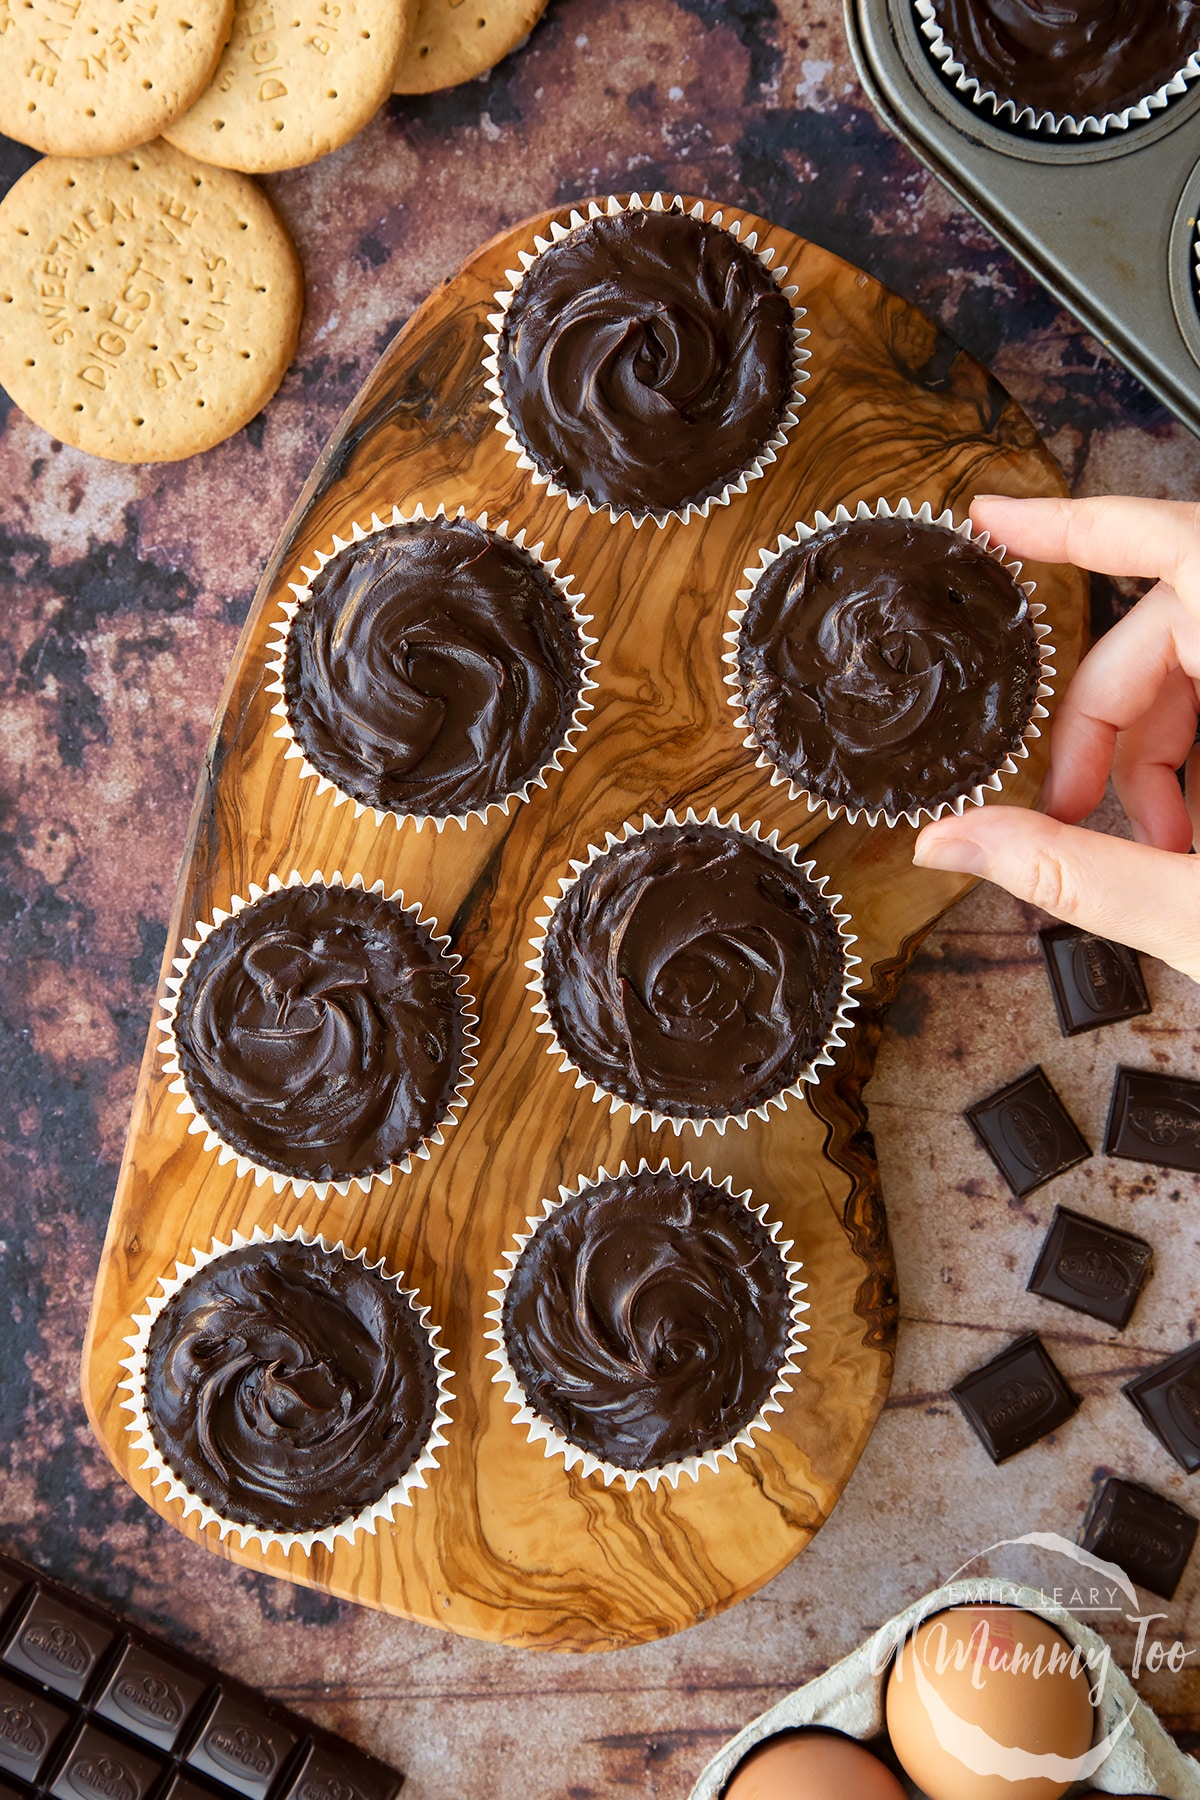 Chocolate cheesecake cupcakes in rows on an olive wood board, shown from above. A hand reaches for one.